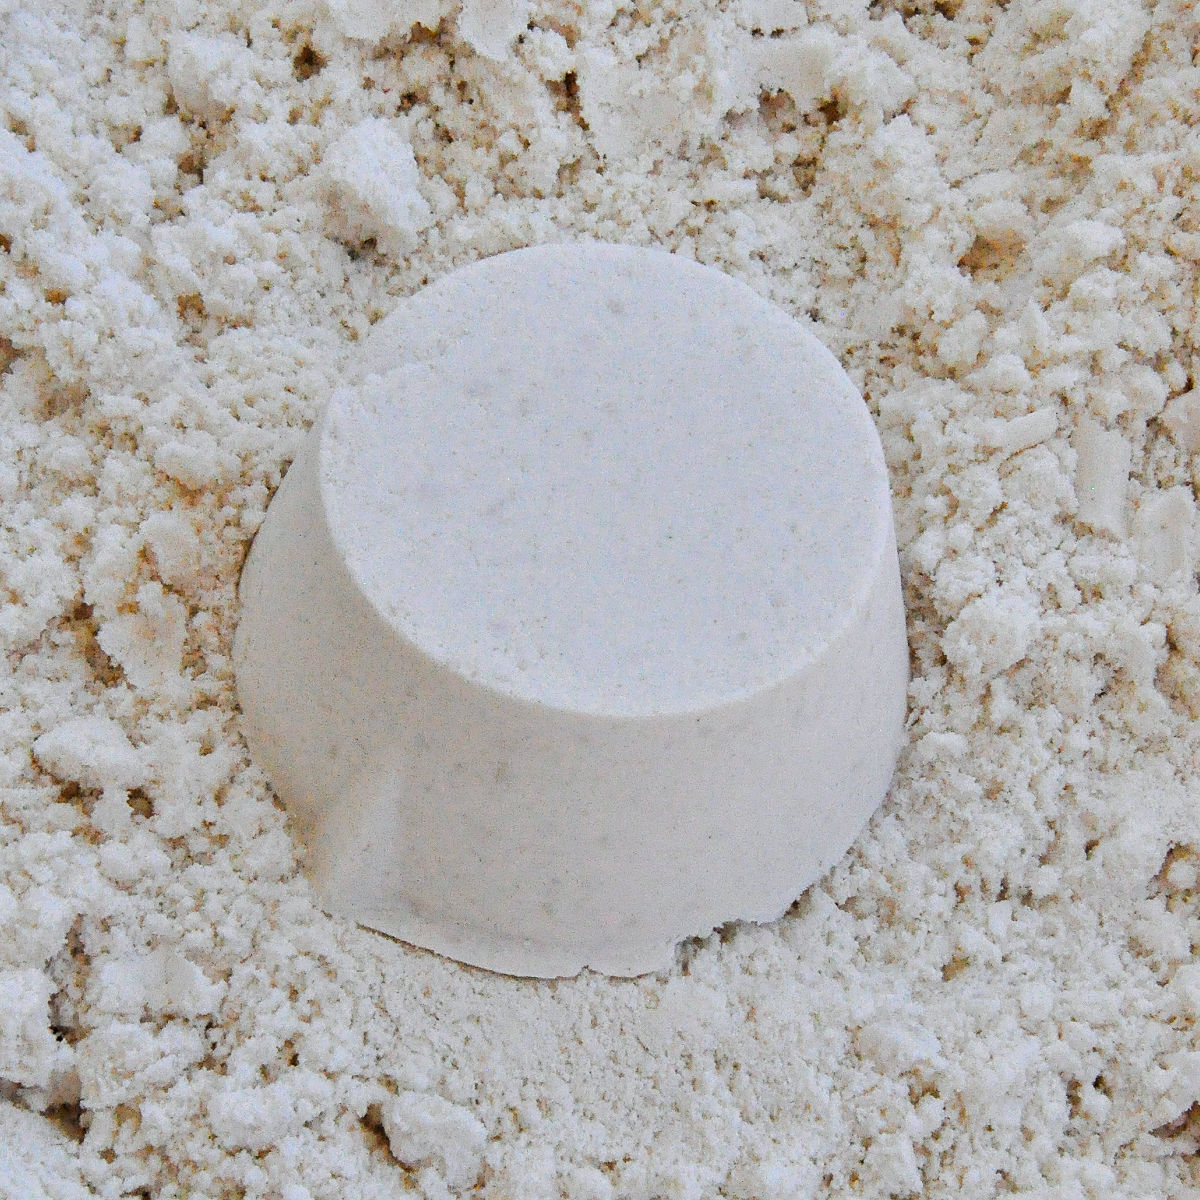 Close up of homemade moon sand